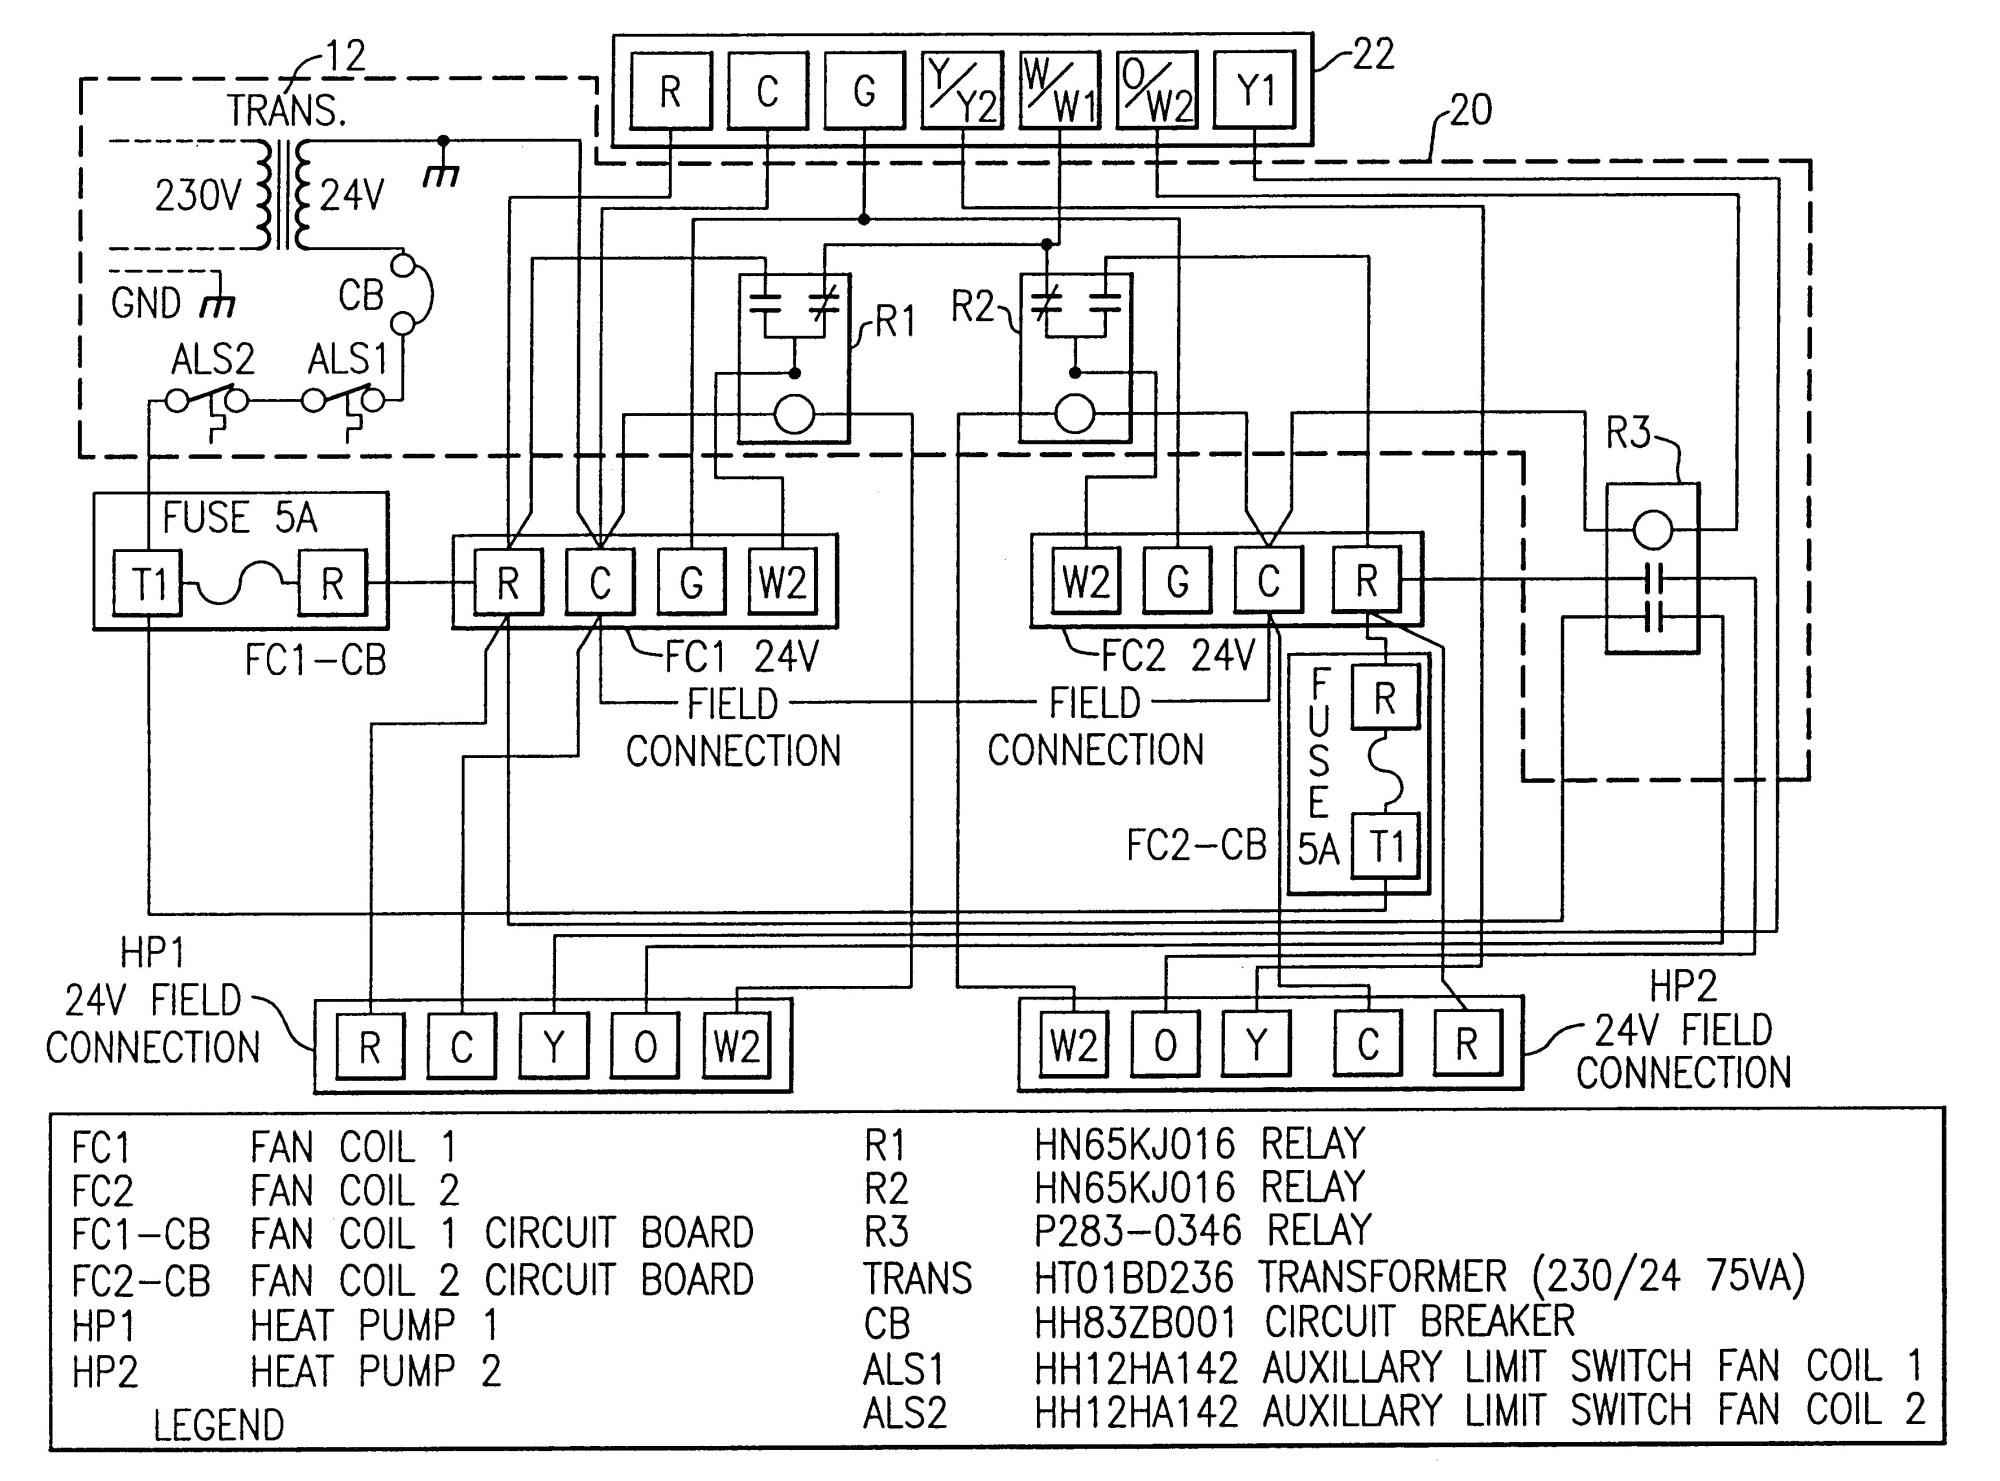 hight resolution of fan coil unit wiring diagram wiring diagram general home fan coil unit wiring diagram wiring diagram